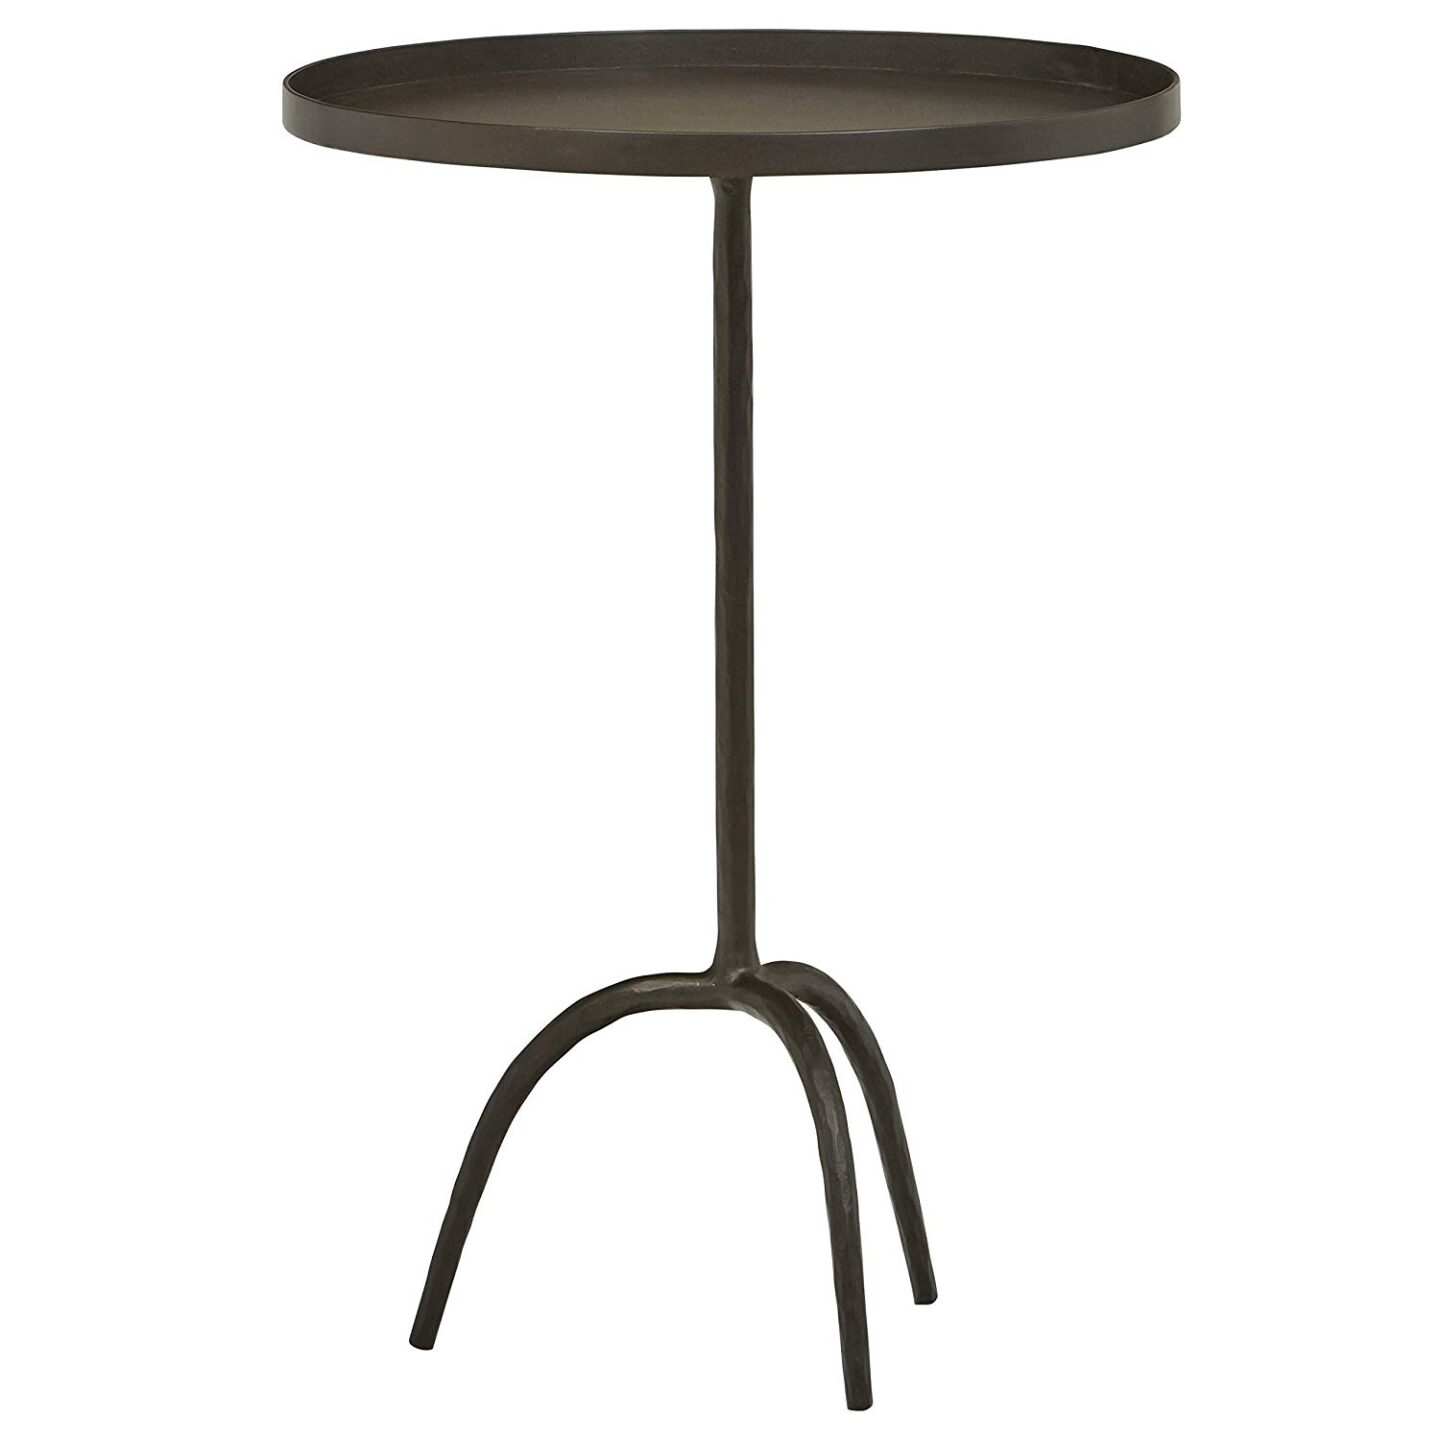 Gunmetal industrial side table or martini table. #sidetable #accenttable #chicfurniture #martinitable